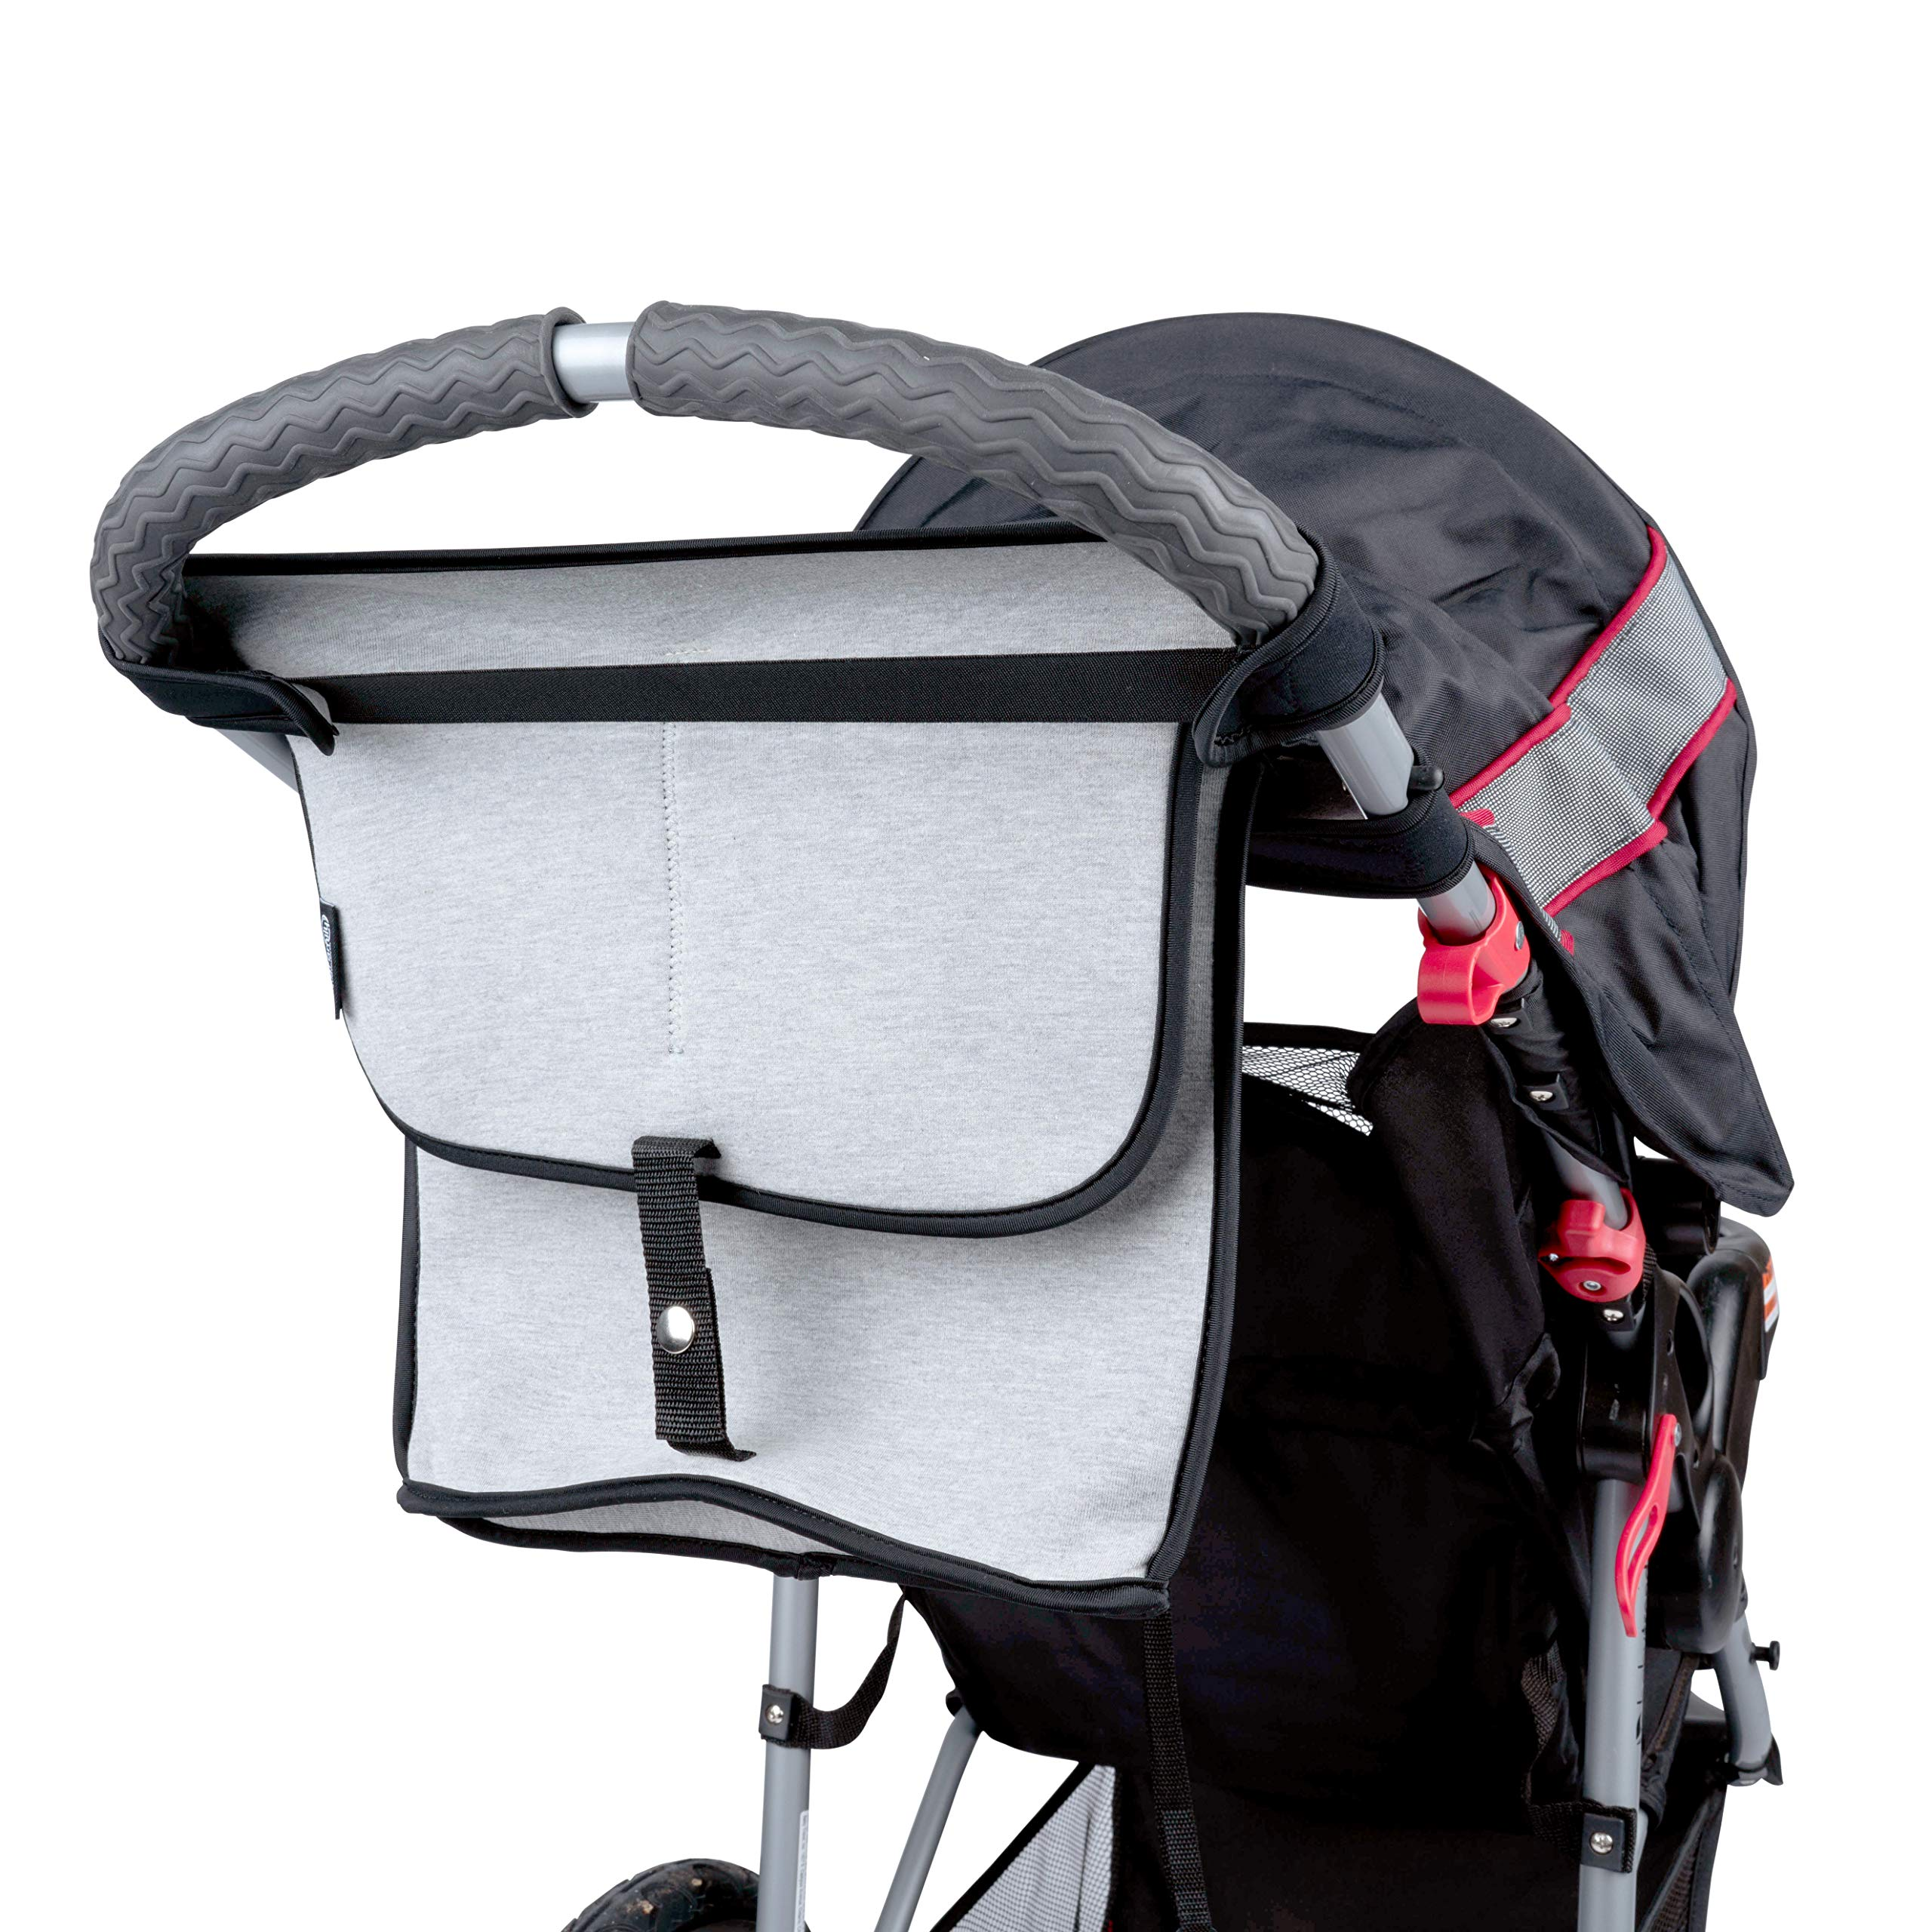 Stroller Organizer Deluxe by Modfamily -XL Neoprene Bag with Zipper Storage Space for Diapers, Wipes, Wallets, Personal Items, and a Cup Holder for Moms & Dads - Fits Umbrella and Single - Pack and Go